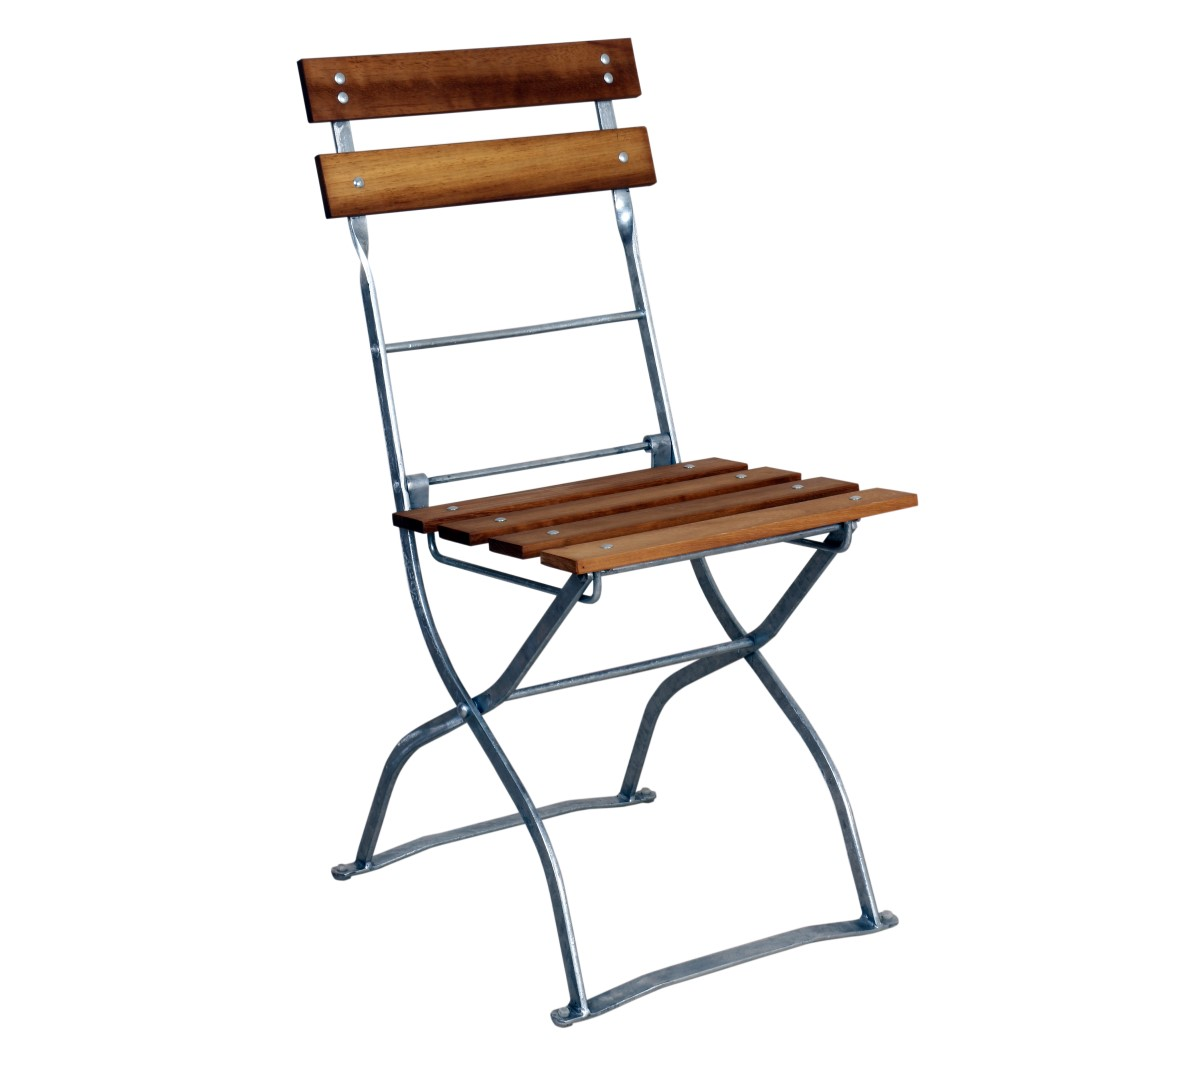 German Beer Garden Chair 5503cw Bk Side European Chestnut Slats And Black Frame